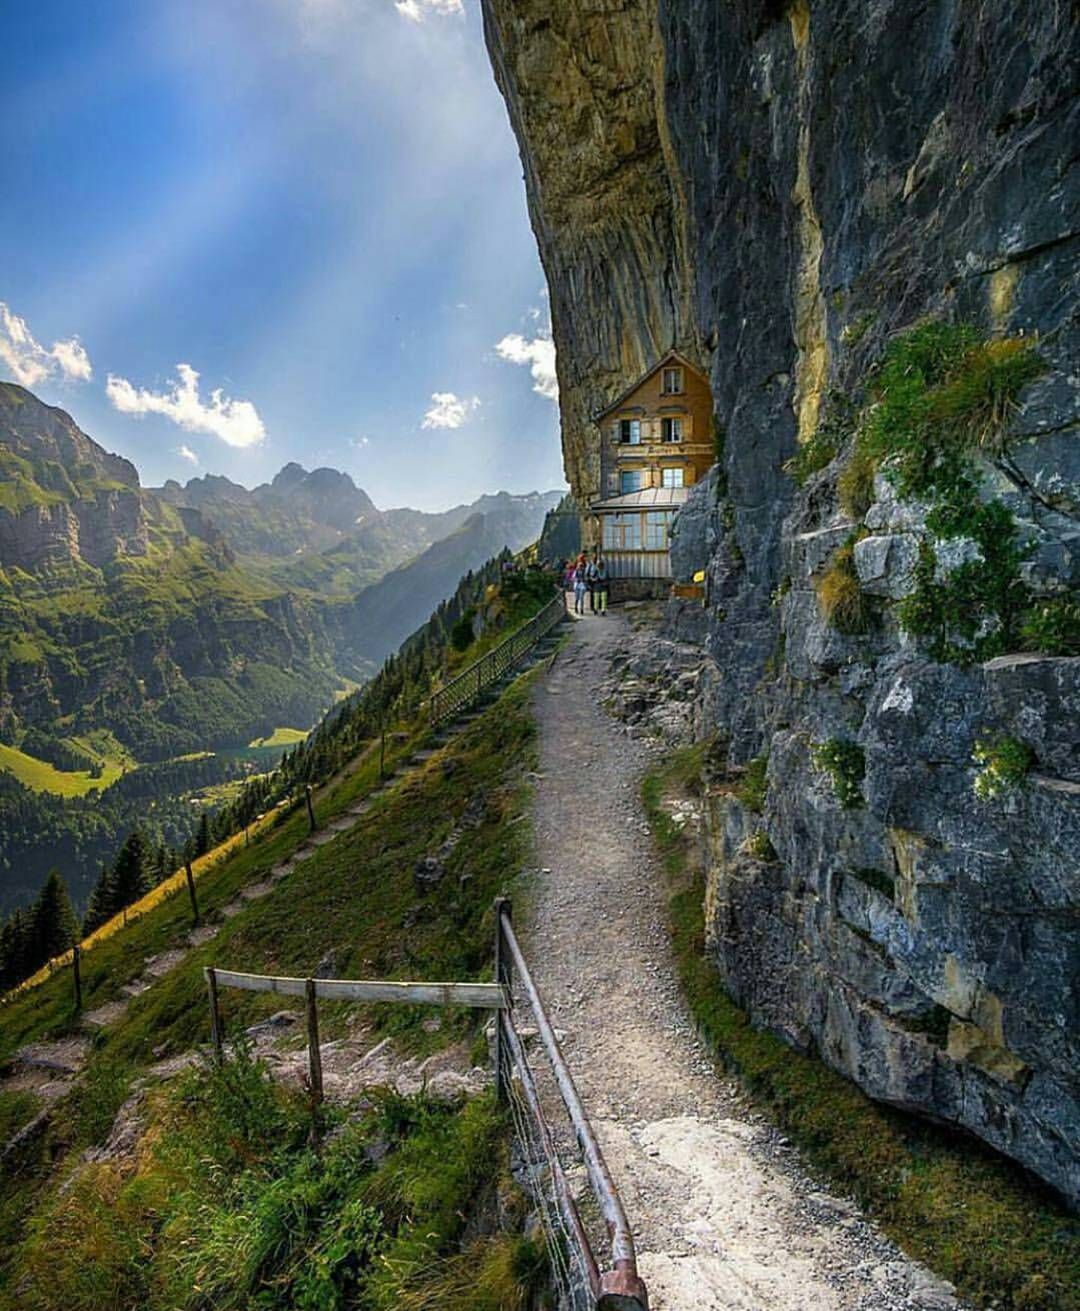 Ascher Guesthouse In Switzerland It Can Only Be Accessed By A Combination